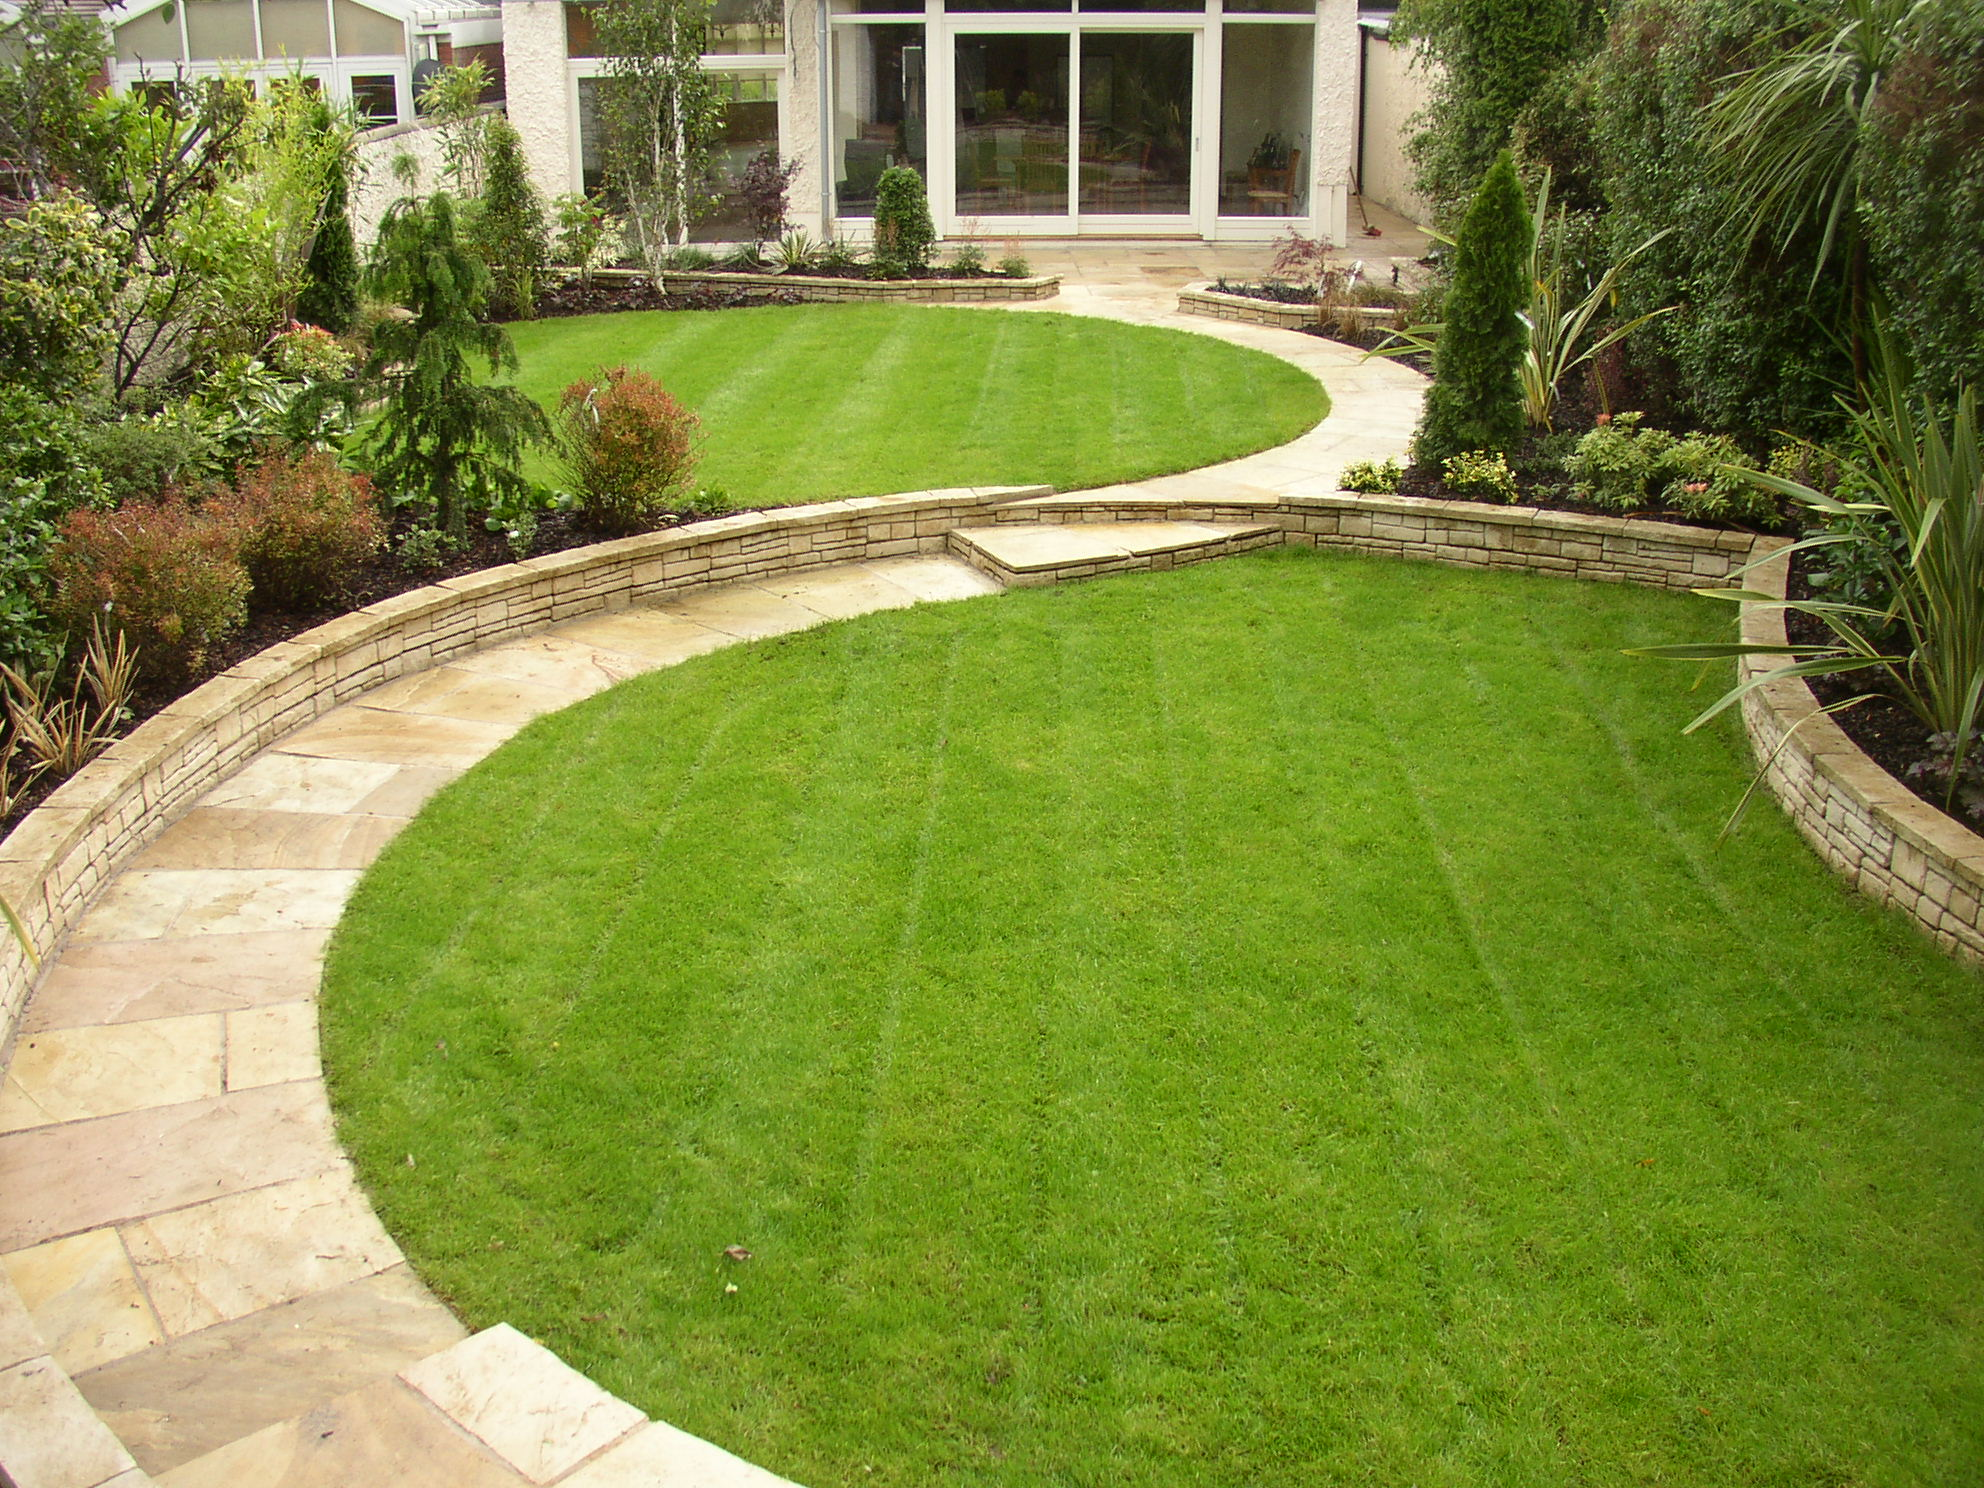 Services landscaping outside options landscaping for Home landscaping services